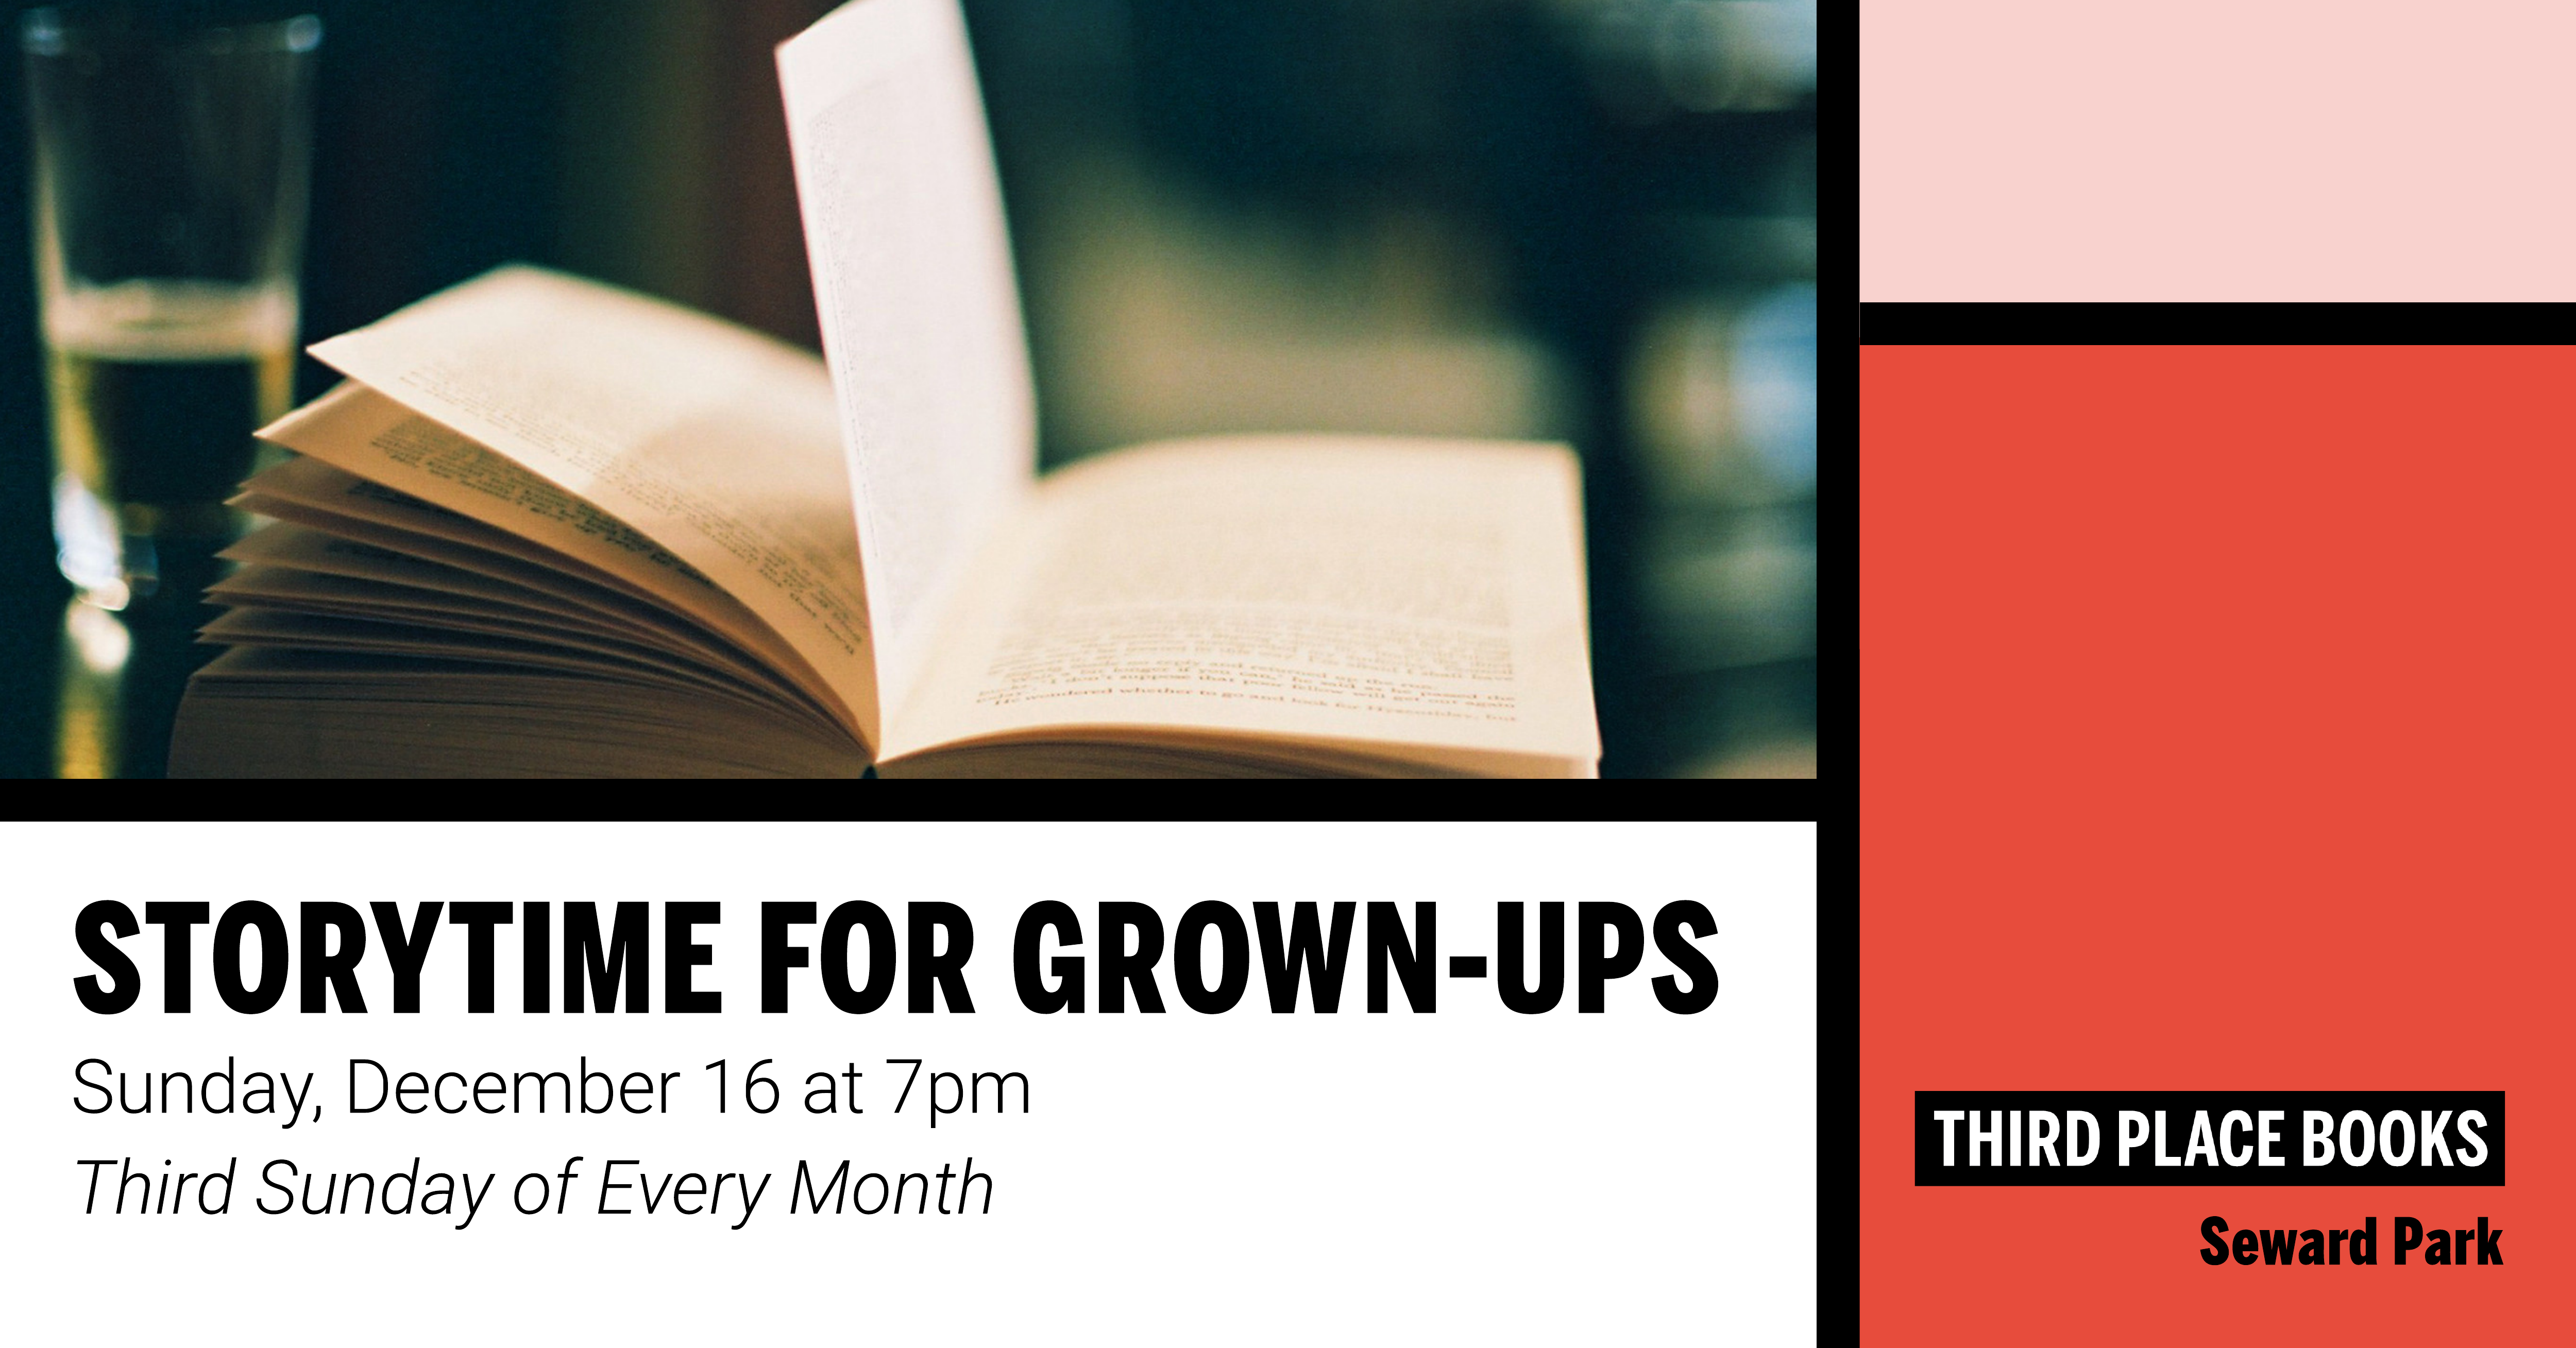 Story Time for Grown Ups! on Sunday, December 16th at 7pm